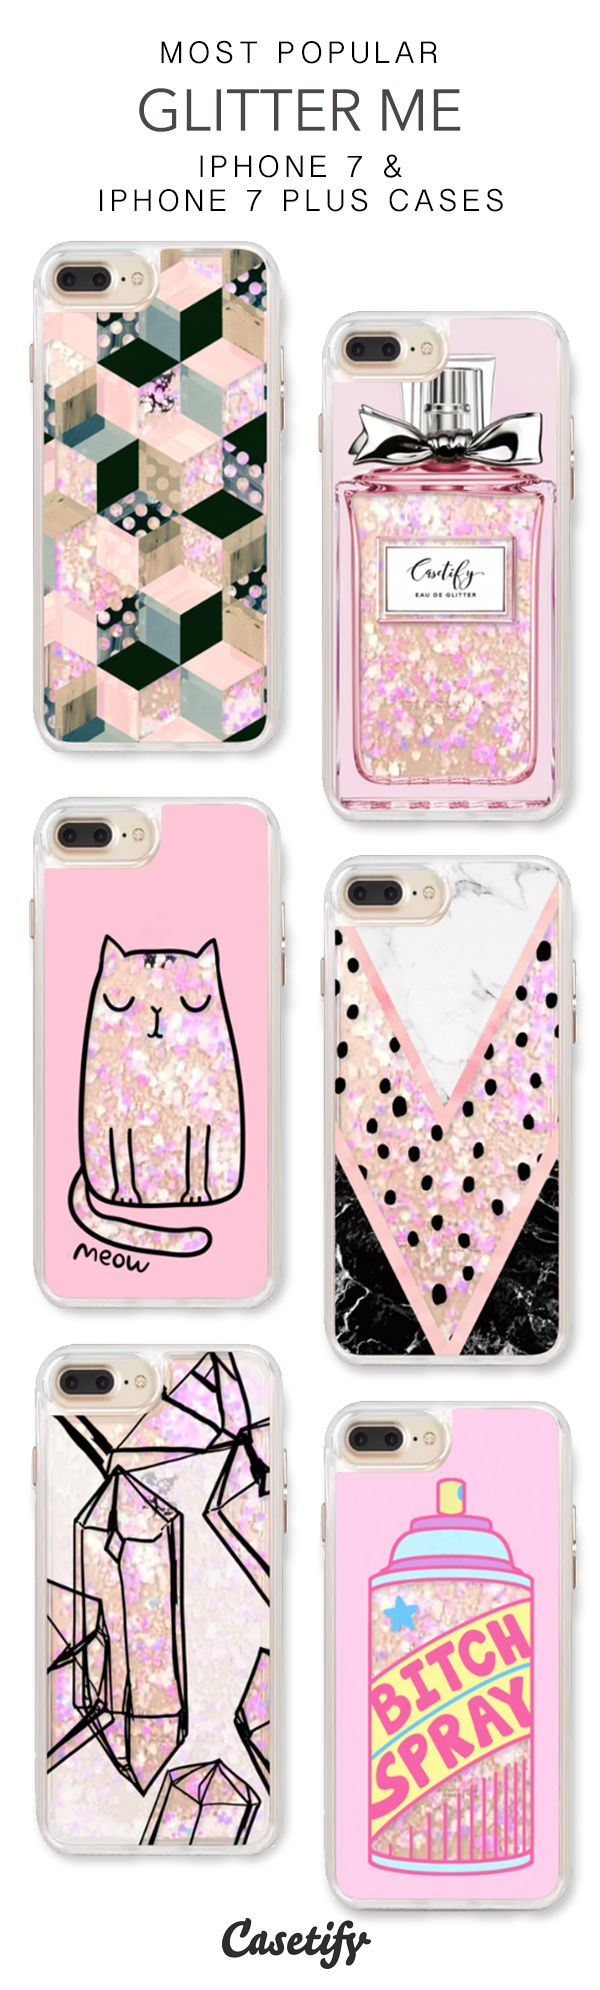 Most Popular Glitter Me iPhone 7 Cases & iPhone 7 Plus Cases. More glitter iPhone case here >  http://amzn.to/2spd3Ru